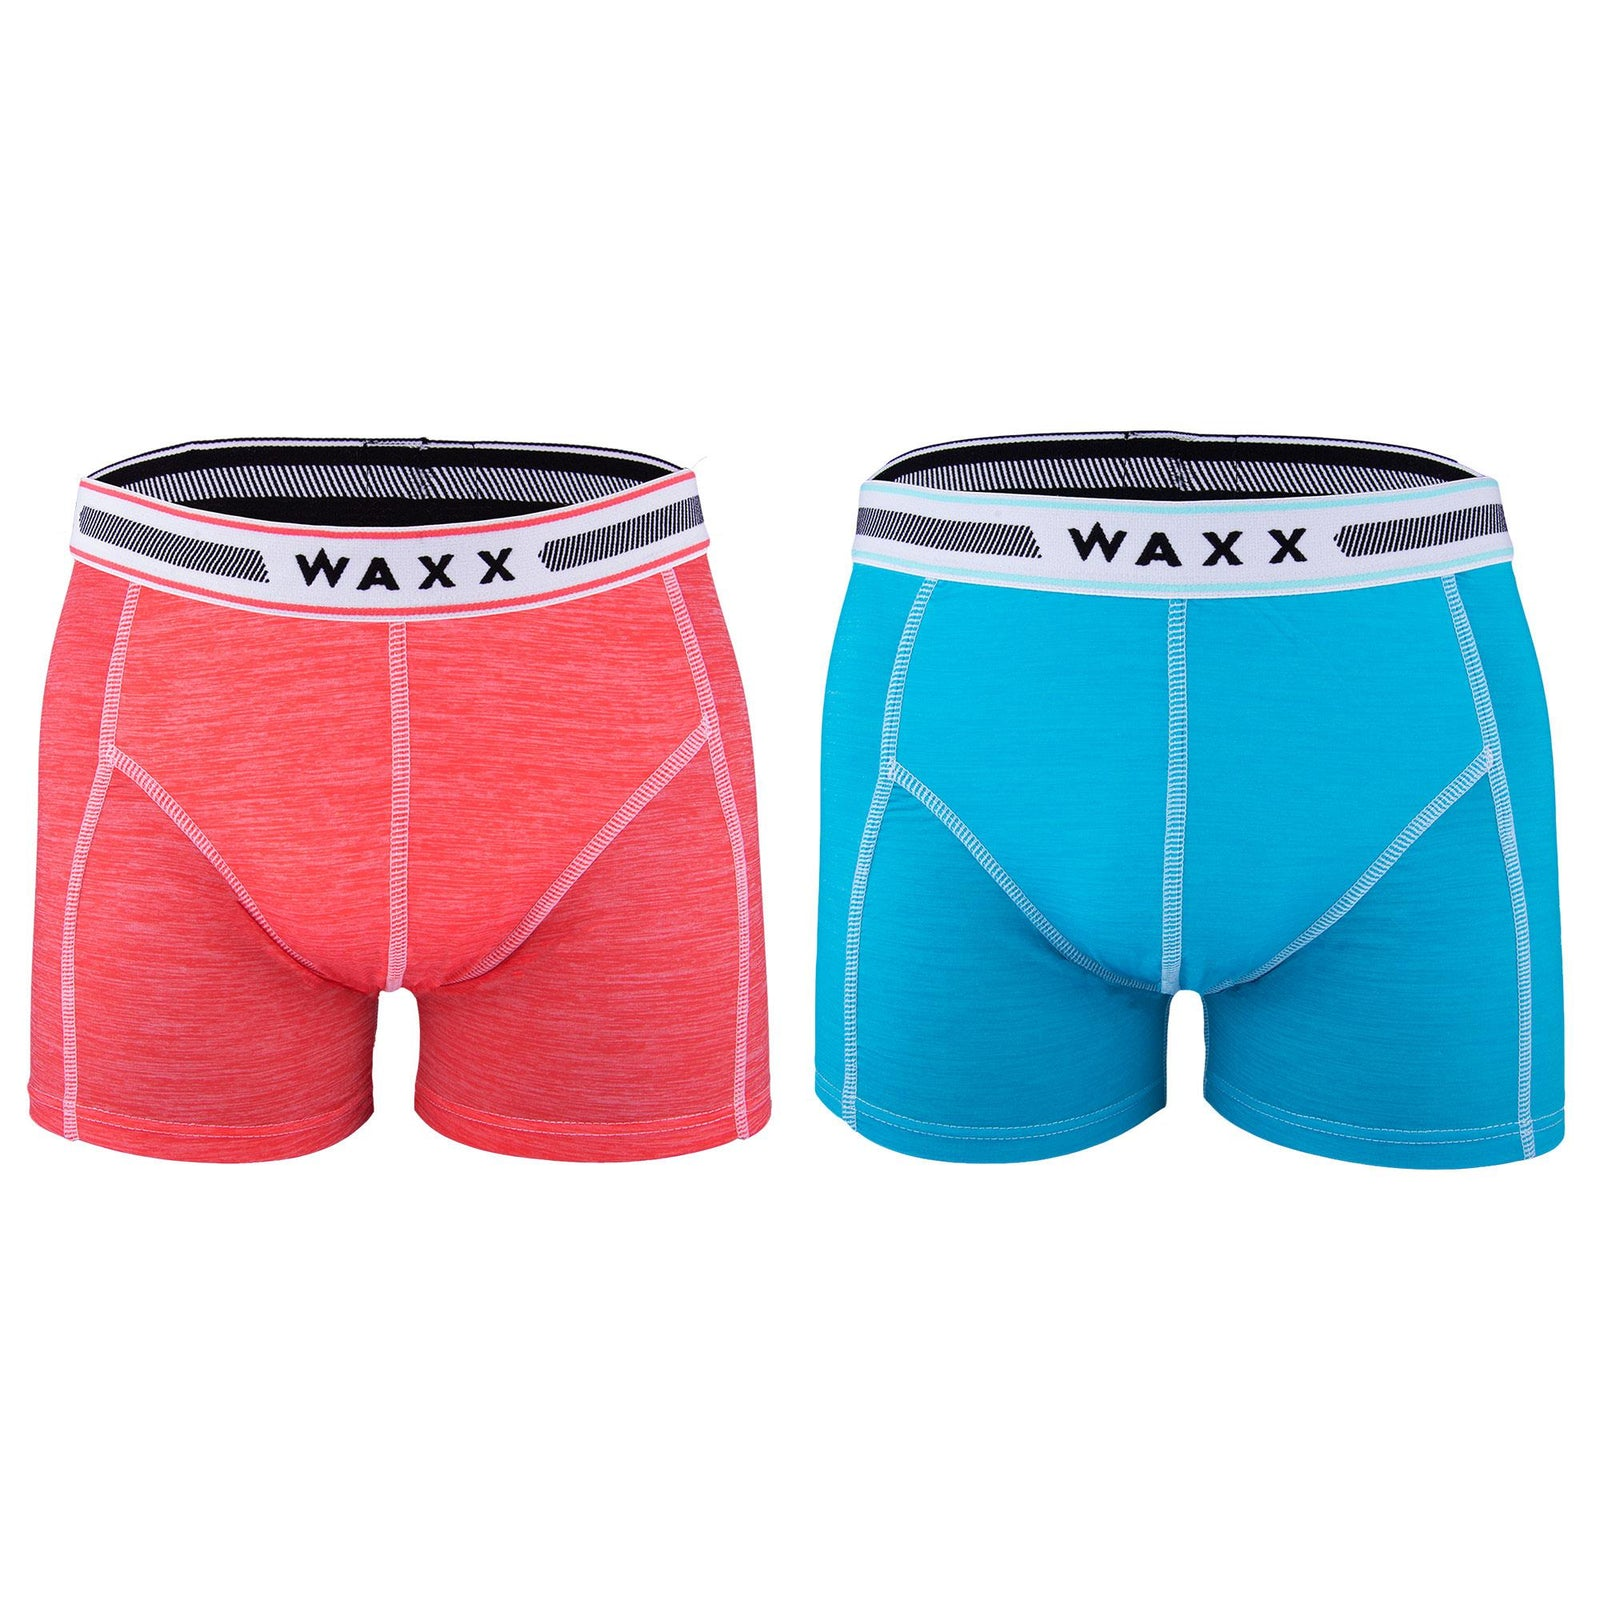 2 Pairs of  Men's Waxx  Boxers/Trunk